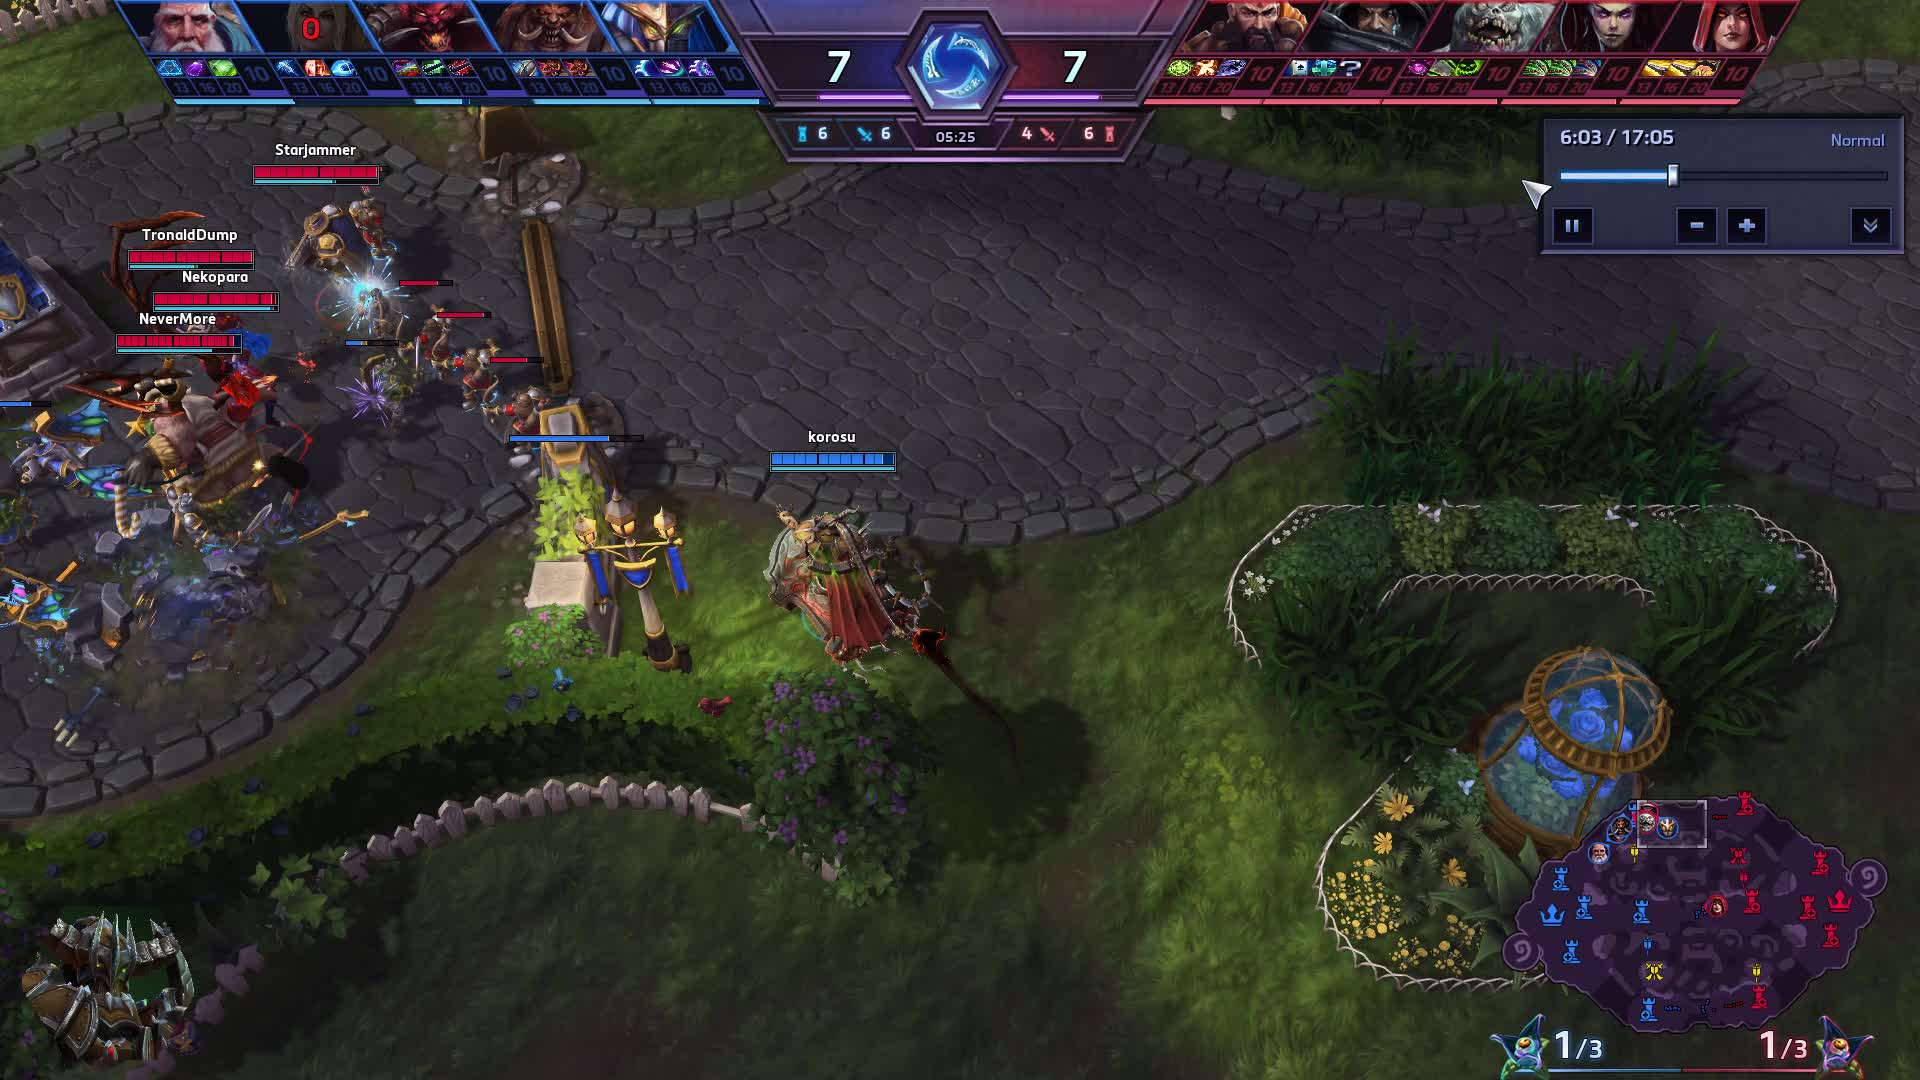 heroesofthestorm, Heroes of the Storm 2019.02.25 - 12.21.31.06 GIFs